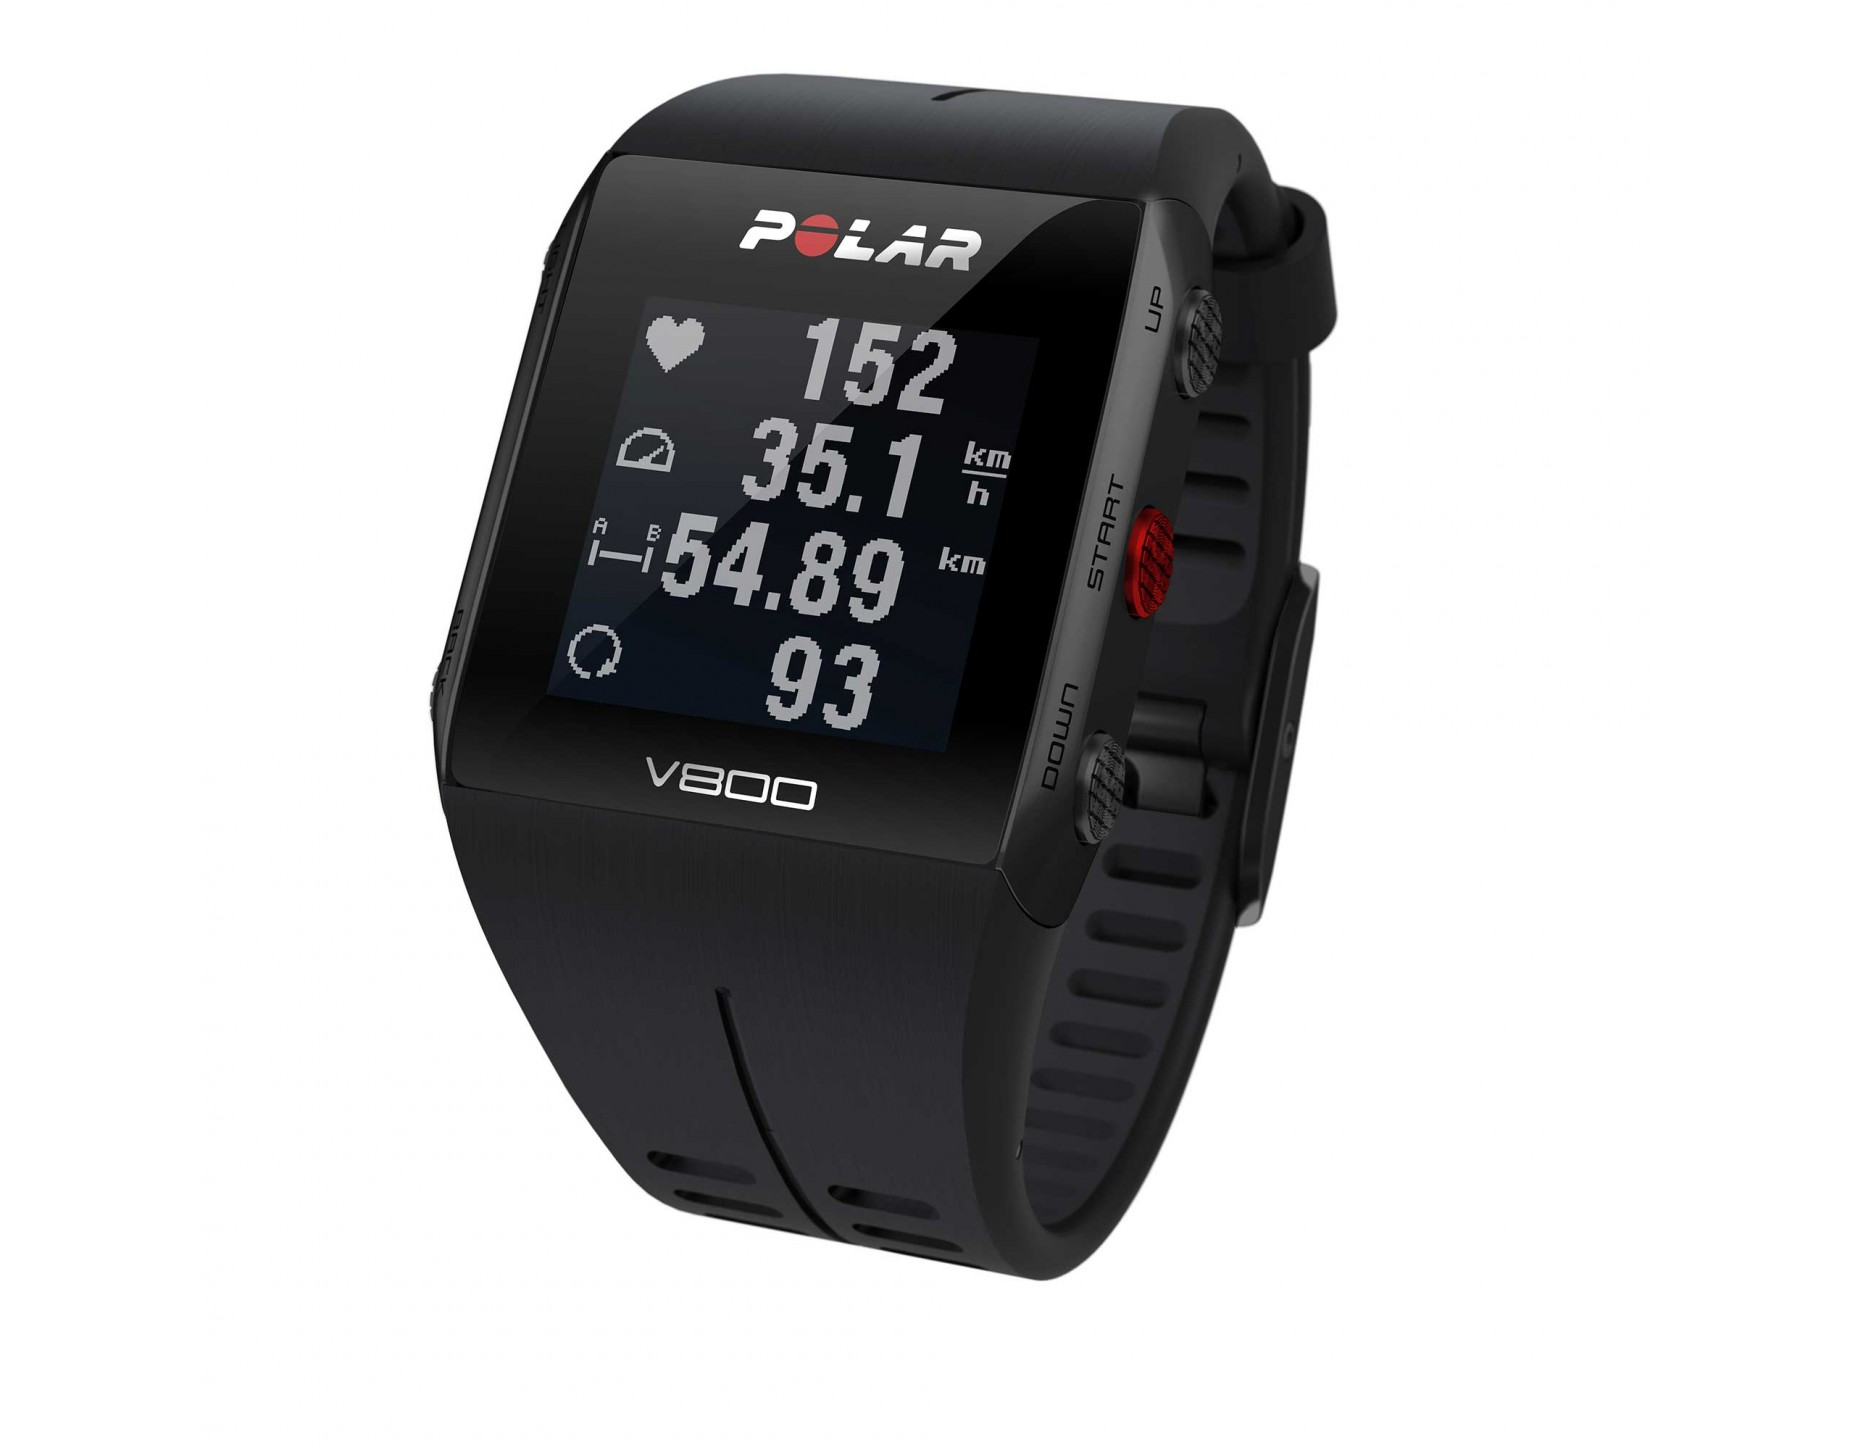 polar v800 hr gps sports watch everything you need rose bikes. Black Bedroom Furniture Sets. Home Design Ideas